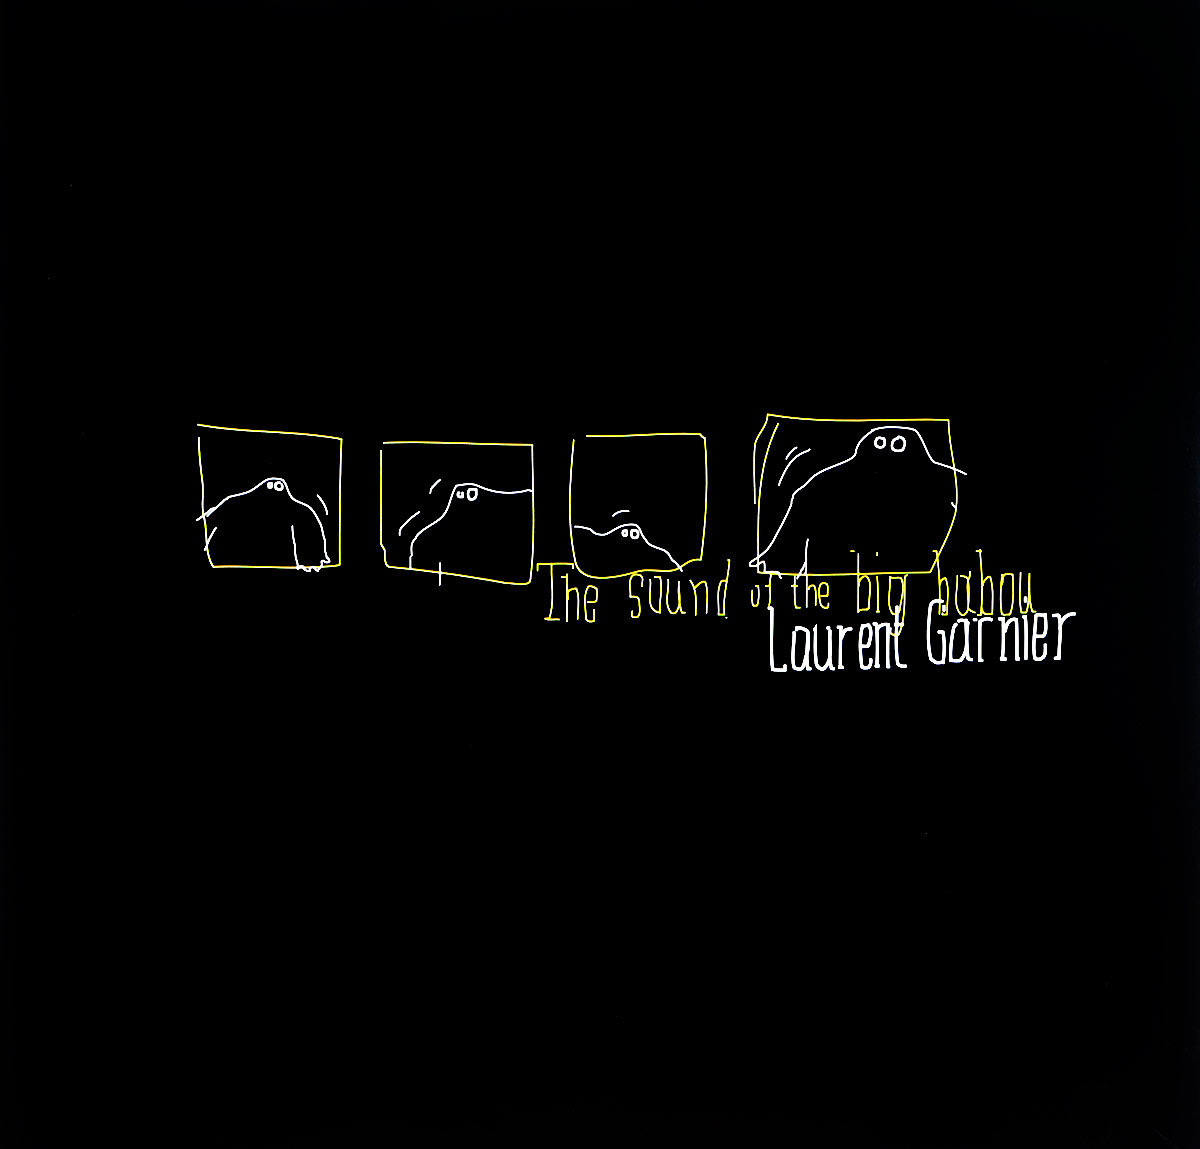 Лоран Гарнье Laurent Garnier. The Sound Of The Big Babou (LP) лоран гарнье laurent garnier pay tv lp